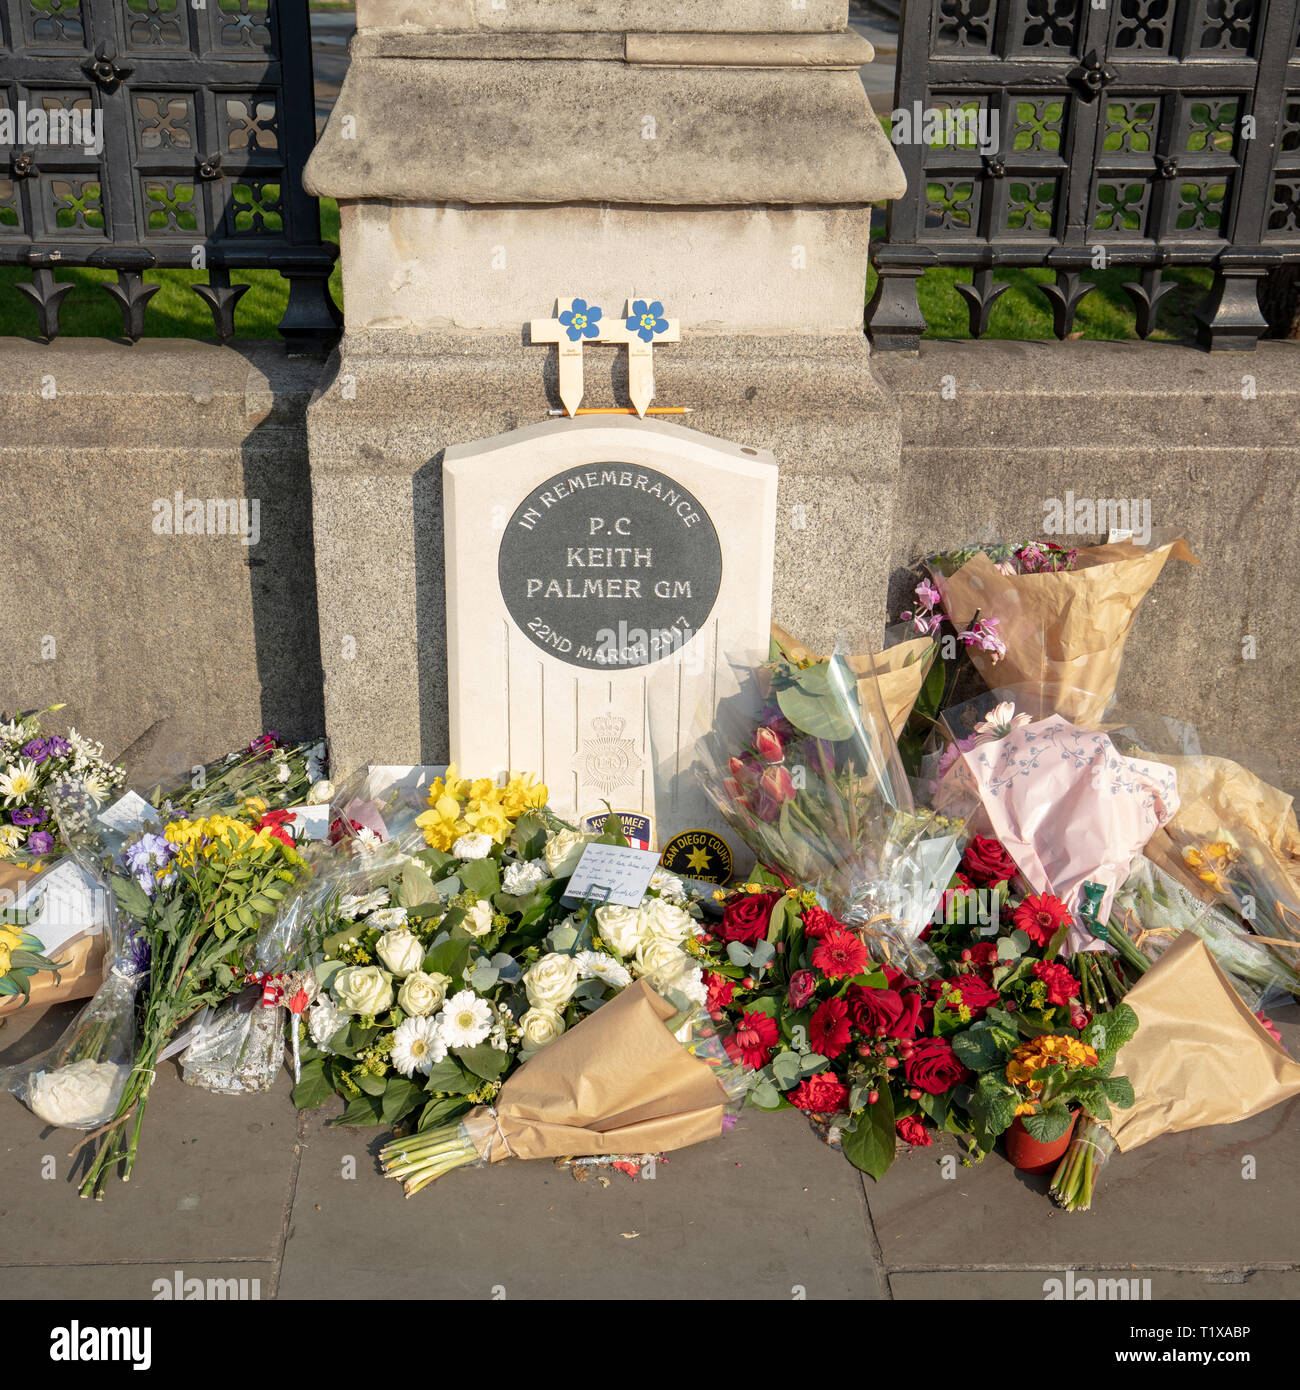 Memorial plaque of PC Keith Palmer, GM, murdered by a terrorist during the 2017 Westminster attack, outside the Westminster Palace, London, England,UK Stock Photo